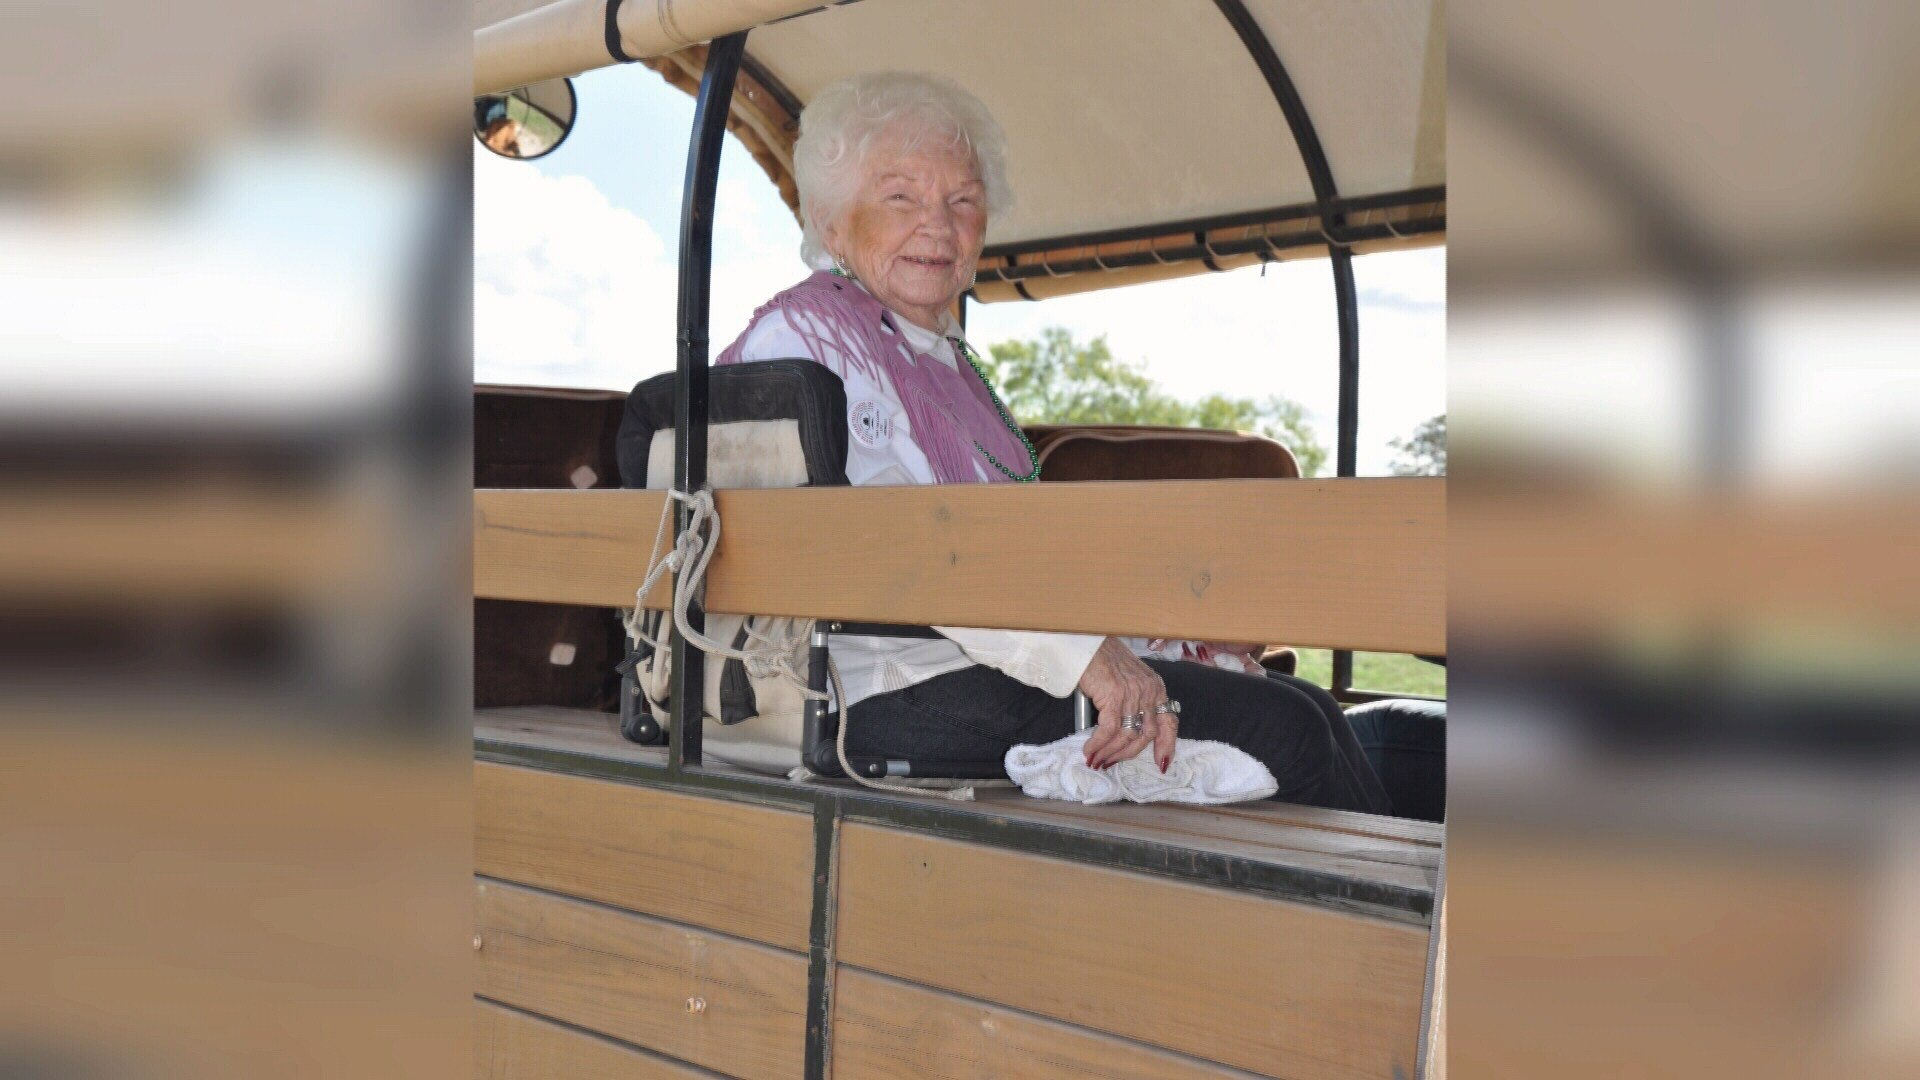 Fitting tribute for Ona Wright Van Dorn, late South Texas Trail -  KRISTV.com | Continuous News Coverage | Corpus Christi